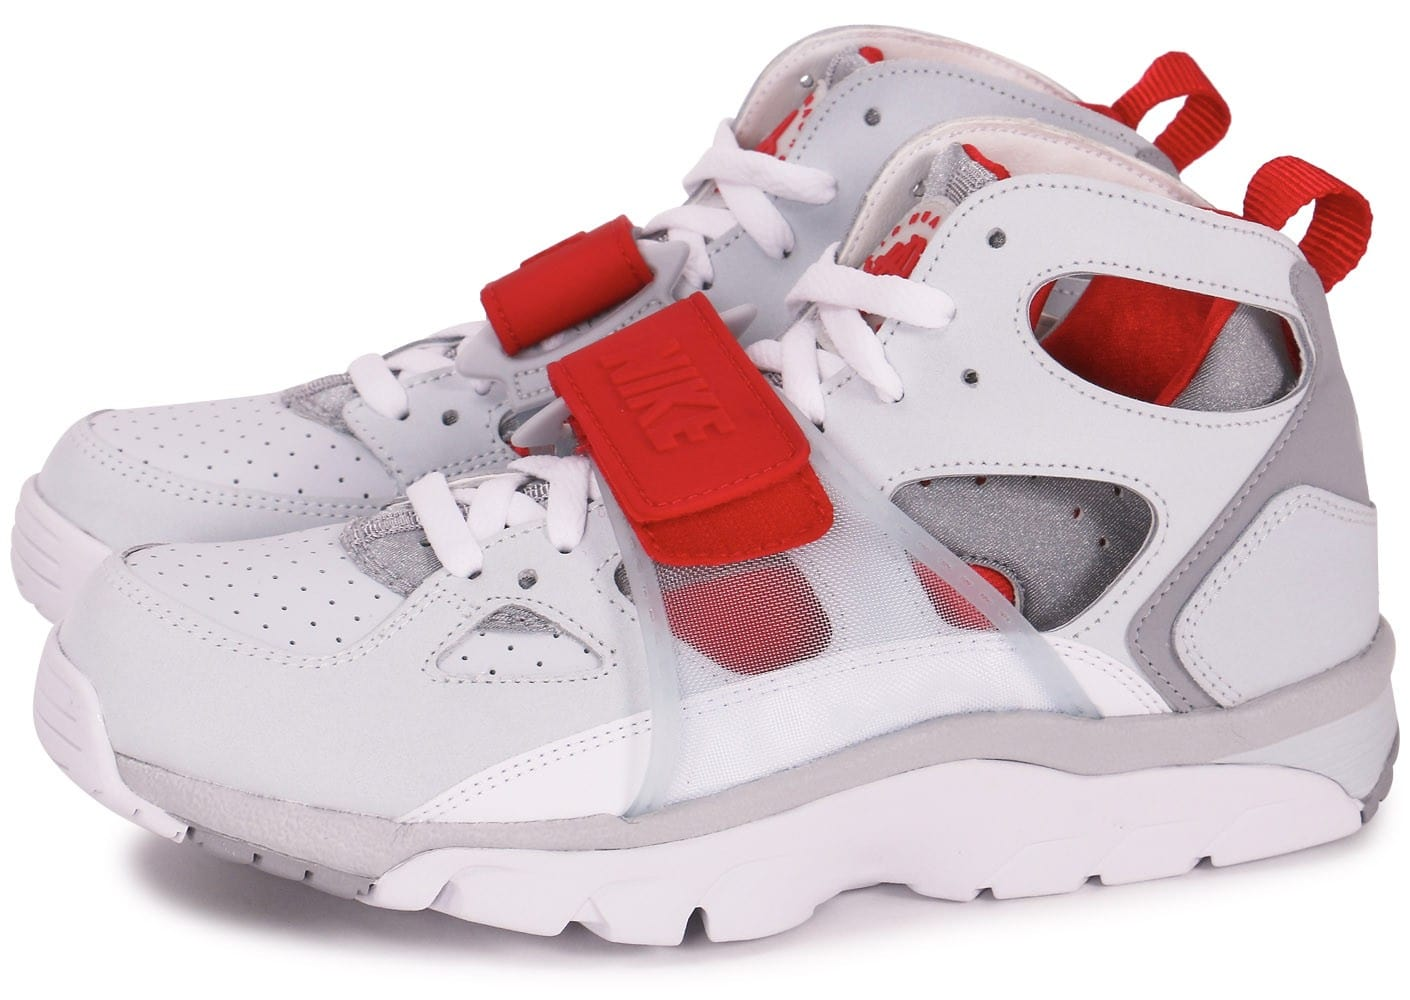 Nike Air Trainer Huarache Blanche Et Rouge - Chaussures ...